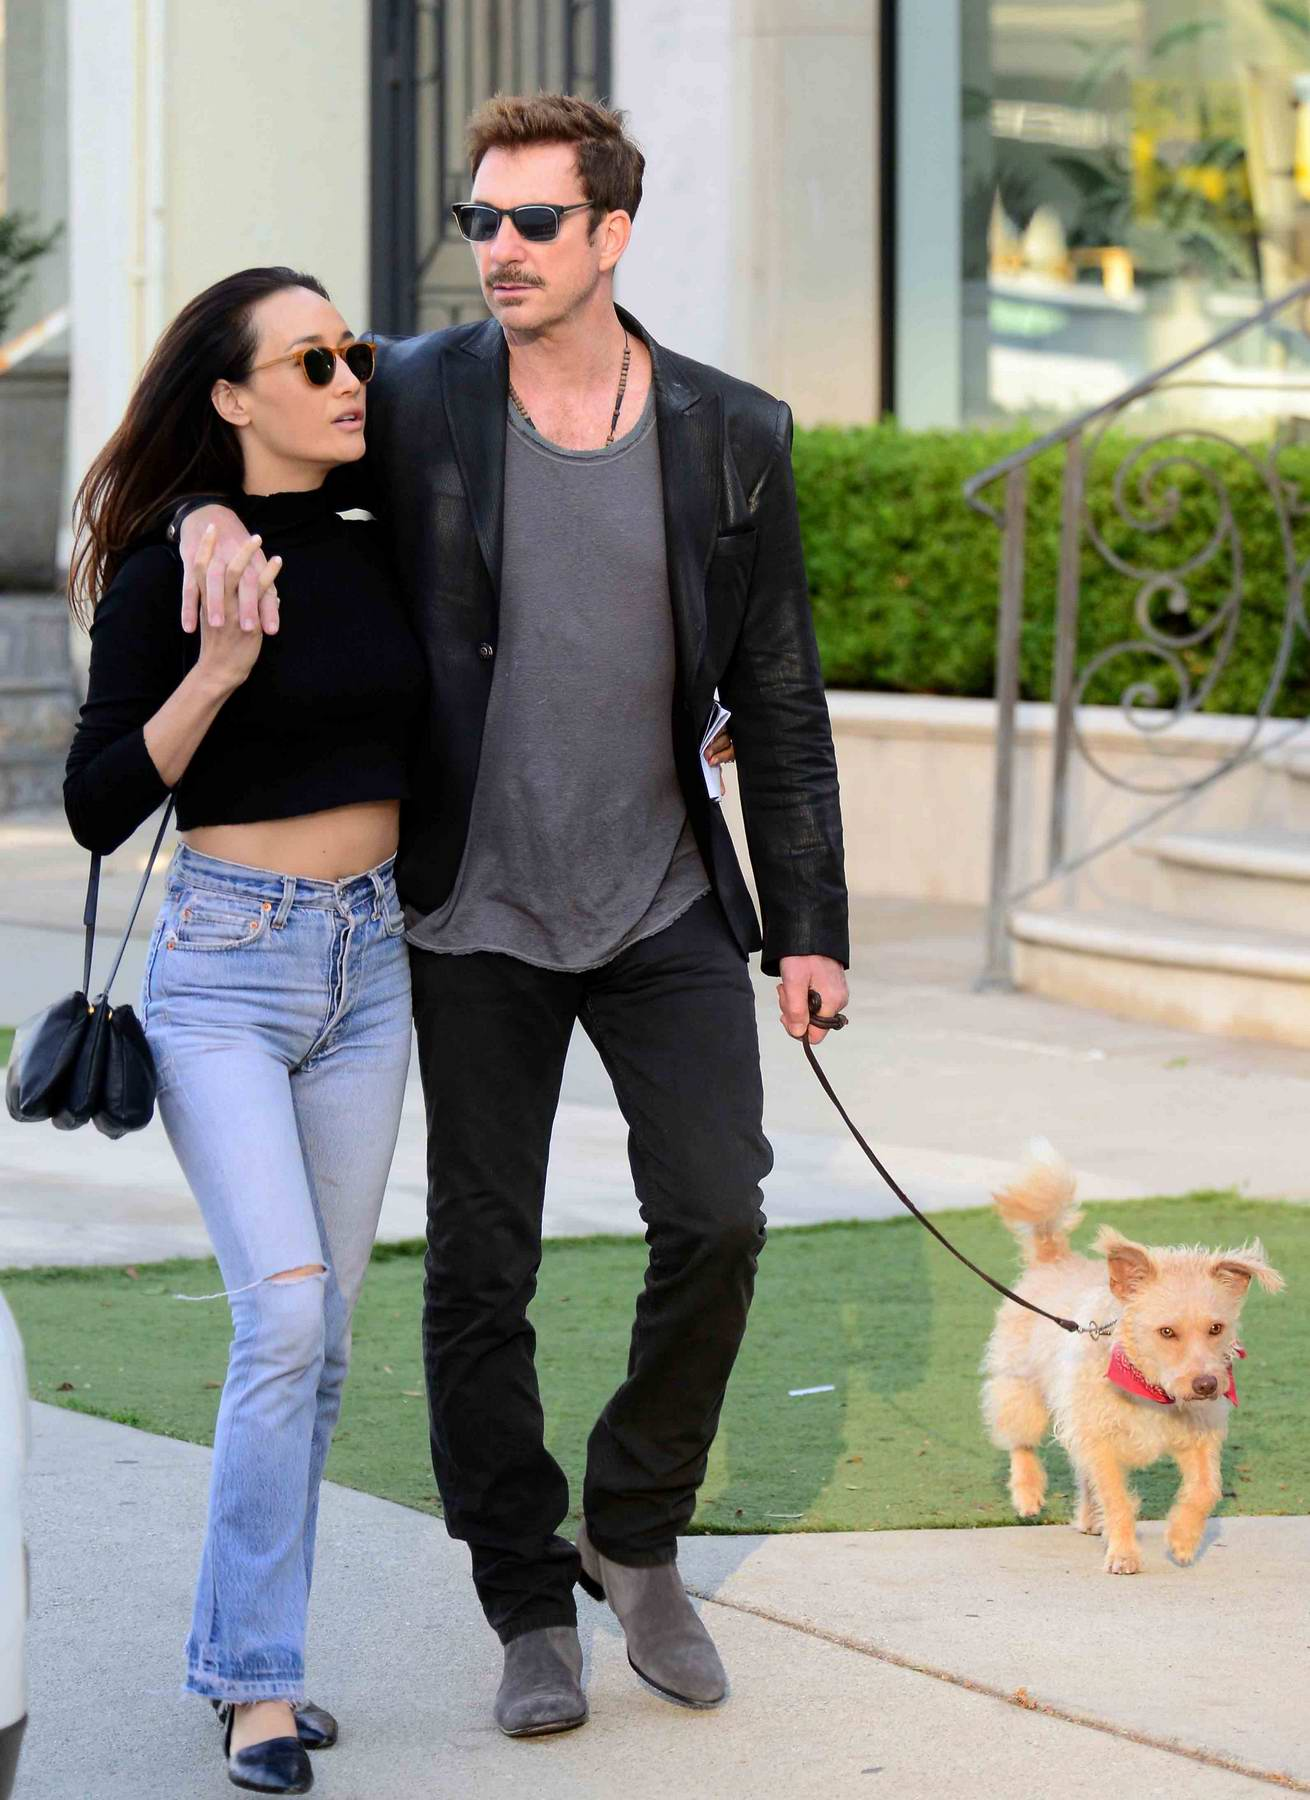 Maggie Q and boyfriend Dylan McDermott out for a walk with their dog on Melrose Avenue in West Hollywood, Los Angeles